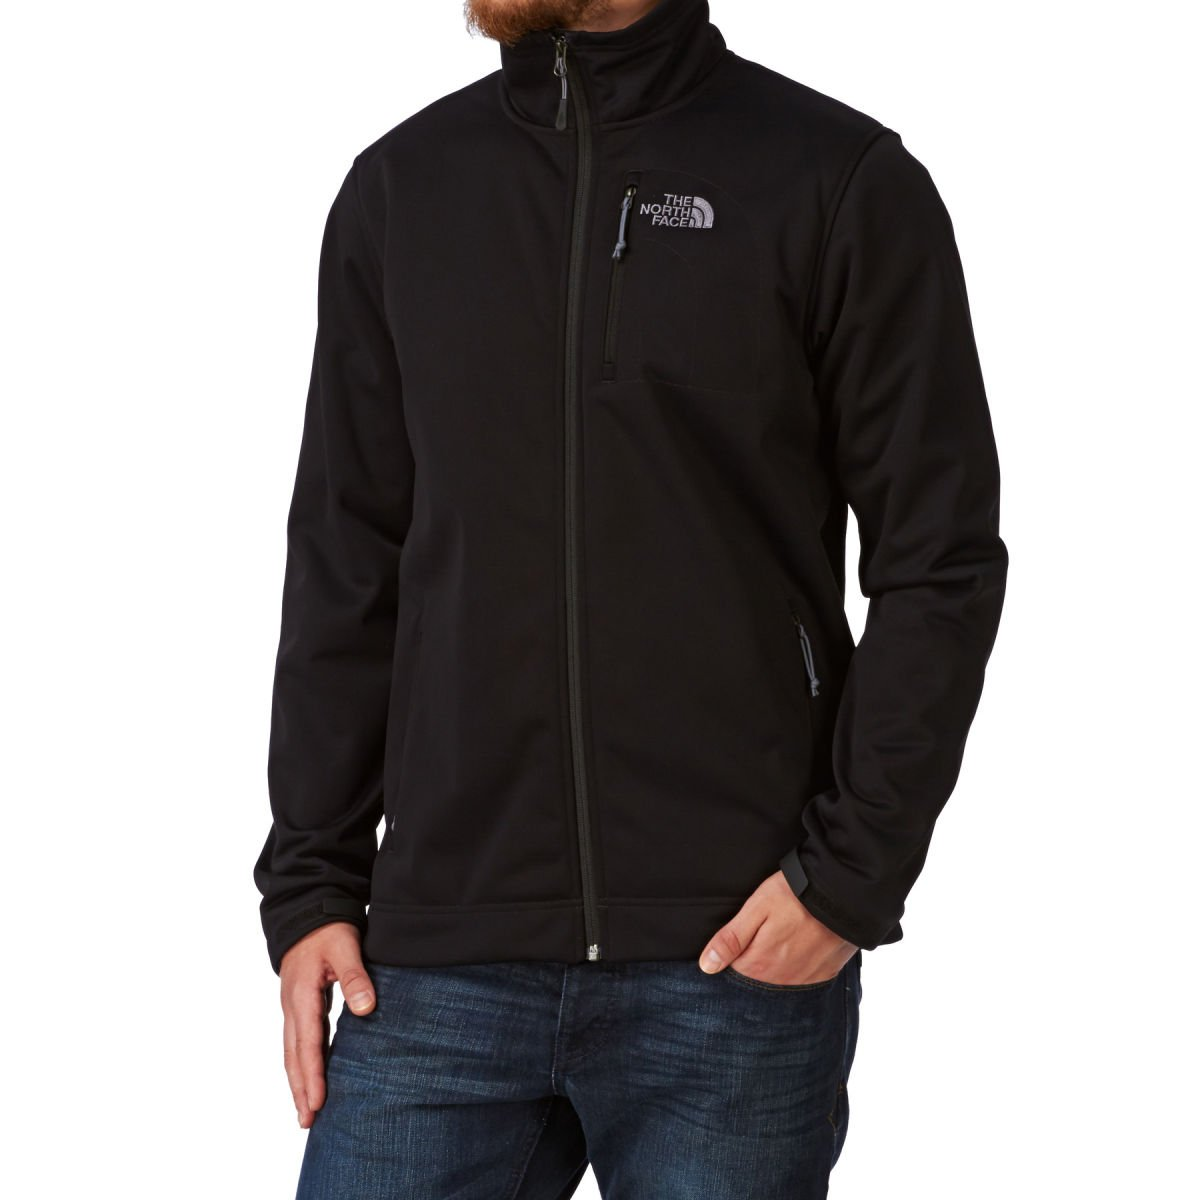 THE NORTH FACE Herren Softshelljacke Durango günstig kaufen